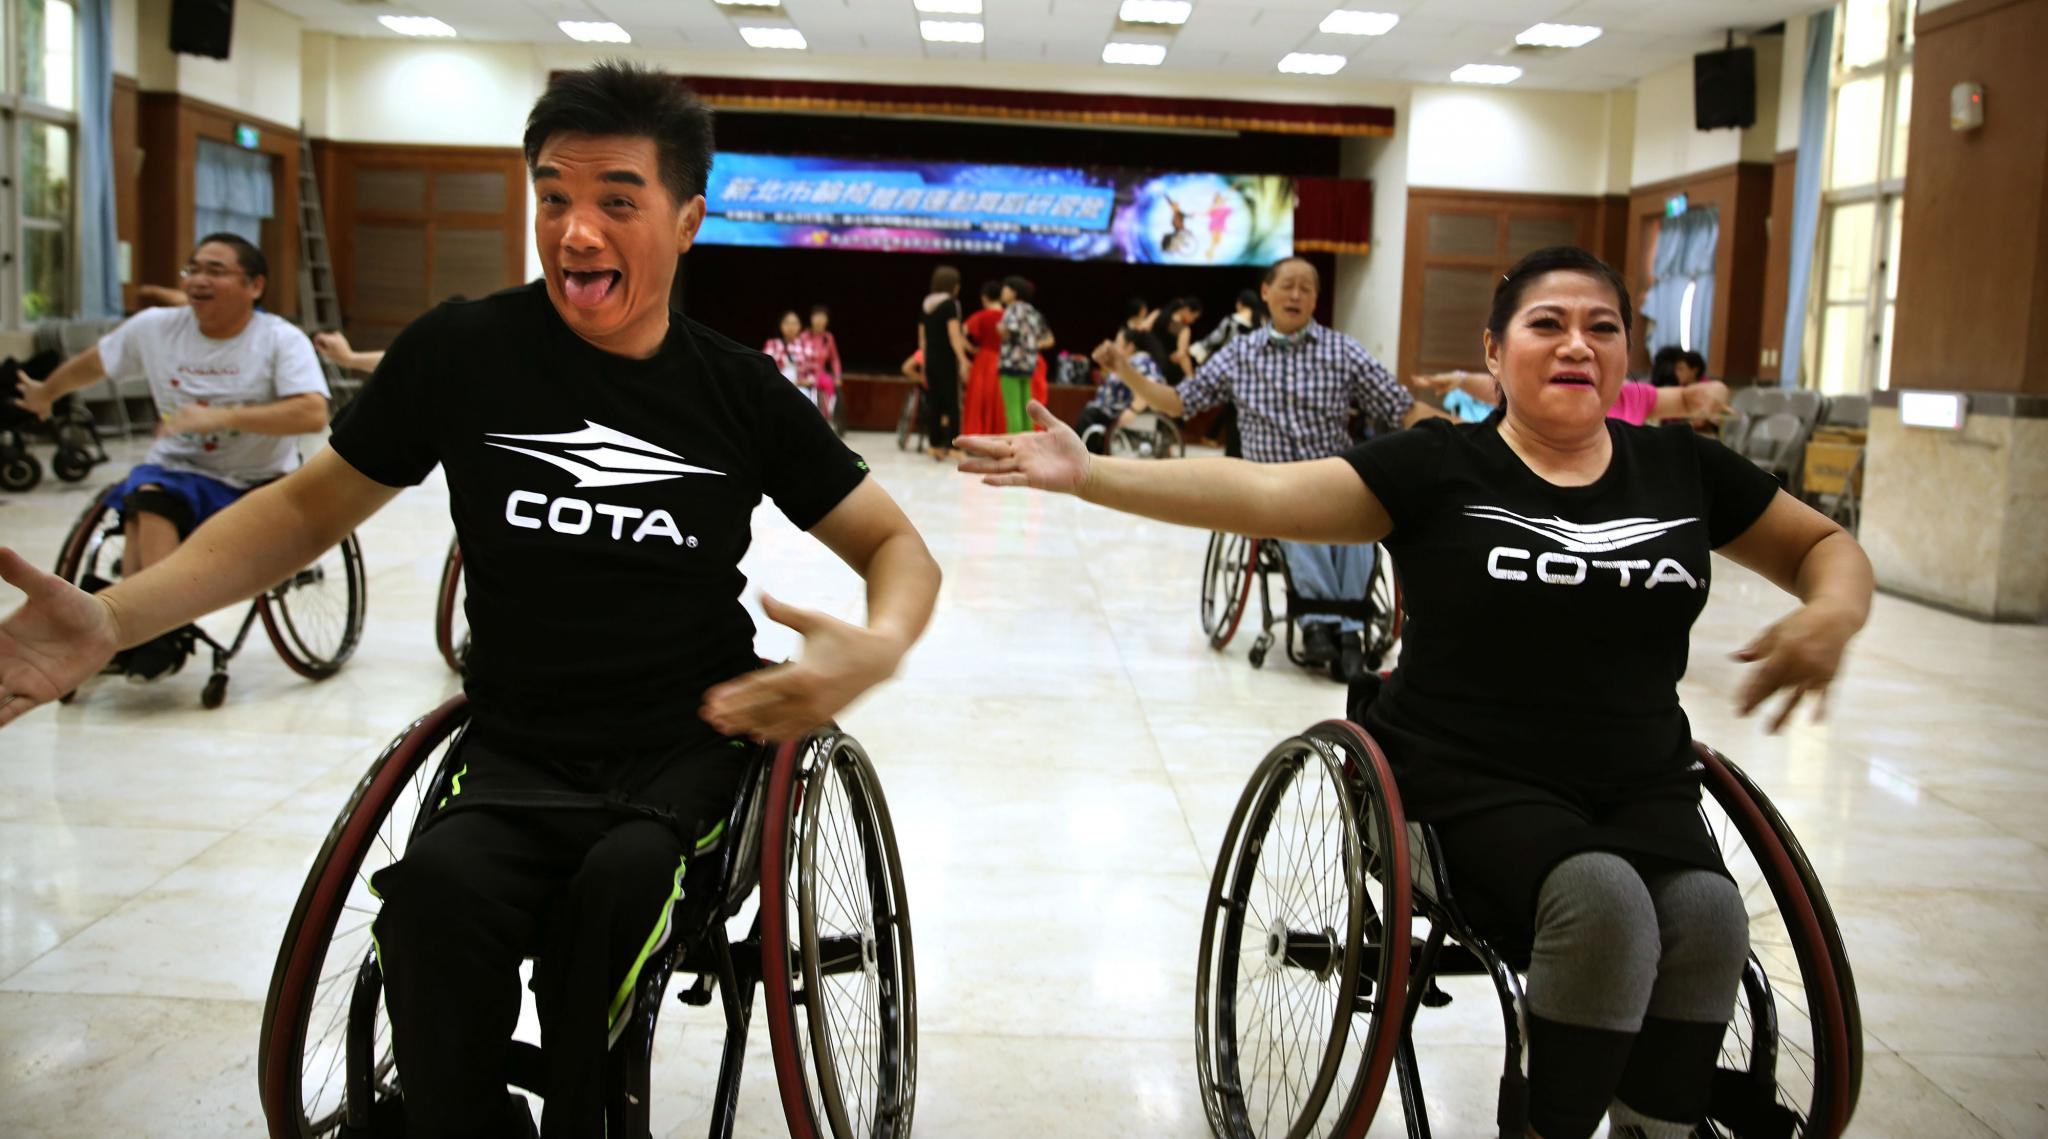 Taiwan's Athletes Fall in Love After Being Paired up for Wheelchair Dancing! Unique Love Story Goes Viral (Watch Video)